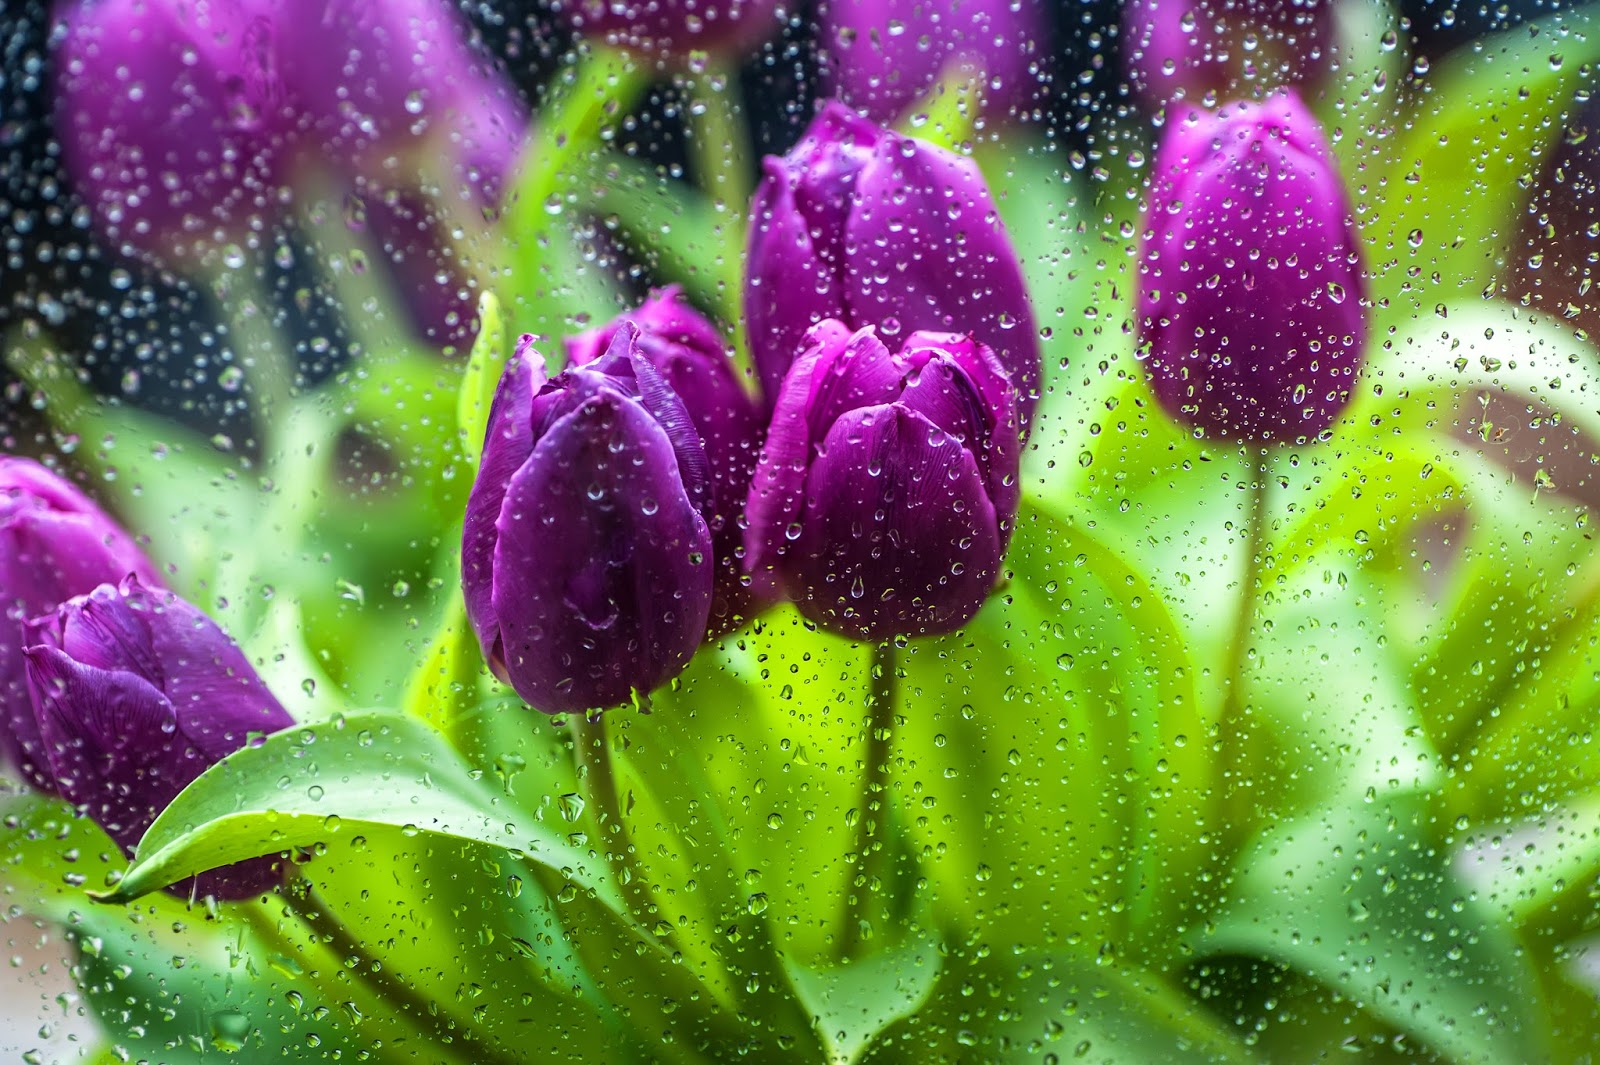 Gems in the attic april showers bring may flowers memories by april showers bring may flowers memories by joan reeves mightylinksfo